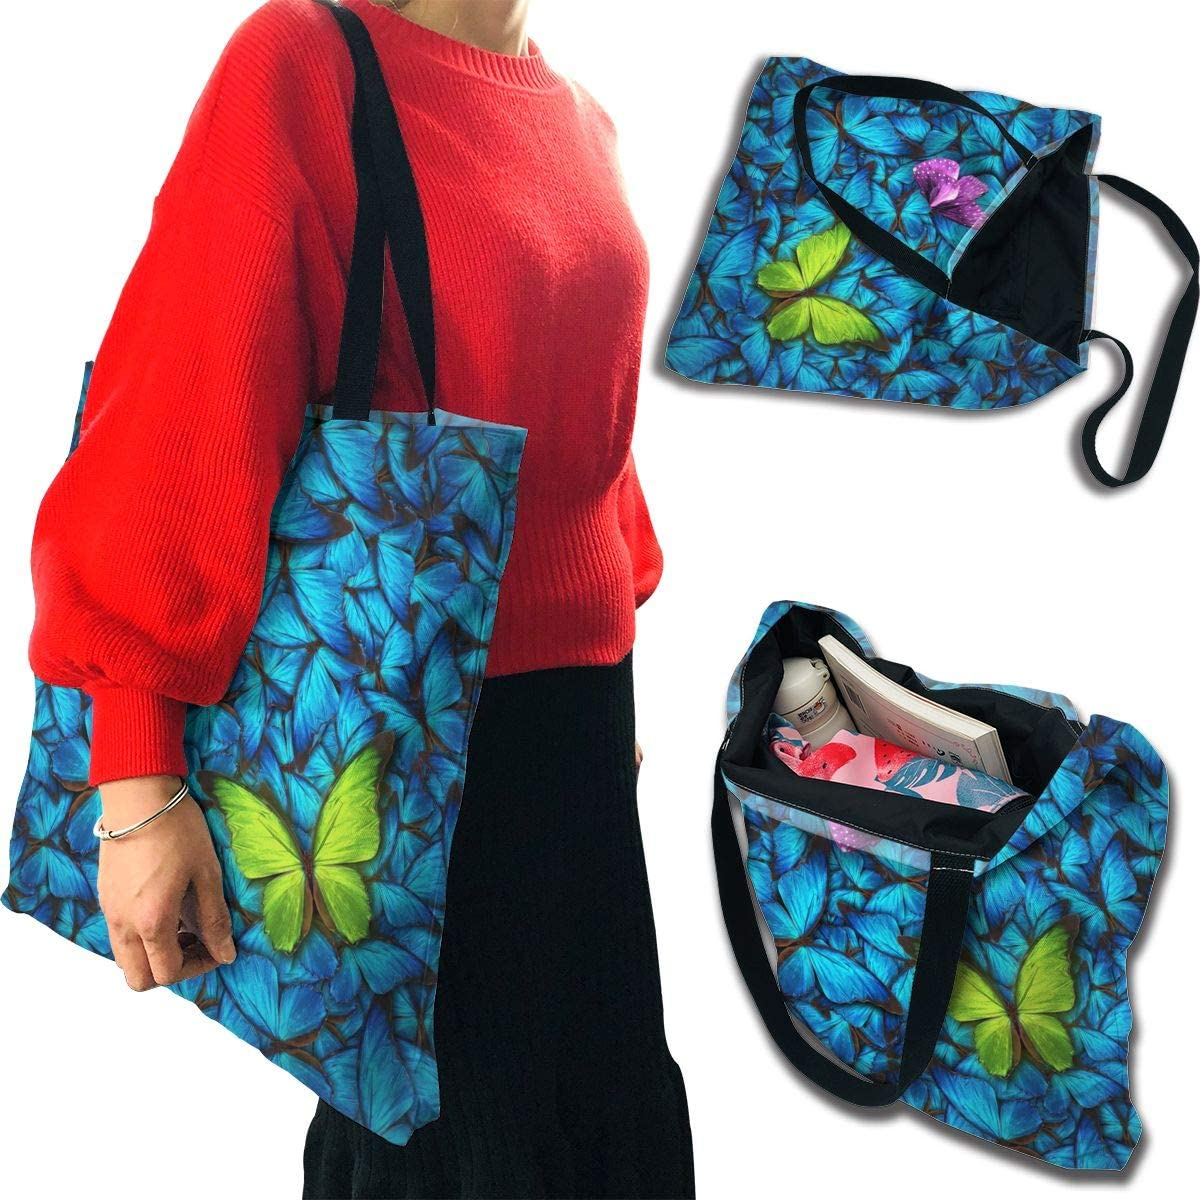 PengMin Green in Blue Butterflys Fashion Womens Multi-Pocket Vintage Canvas Handbags Miniature Shoulder Bags Totes Purses Shopping Bags